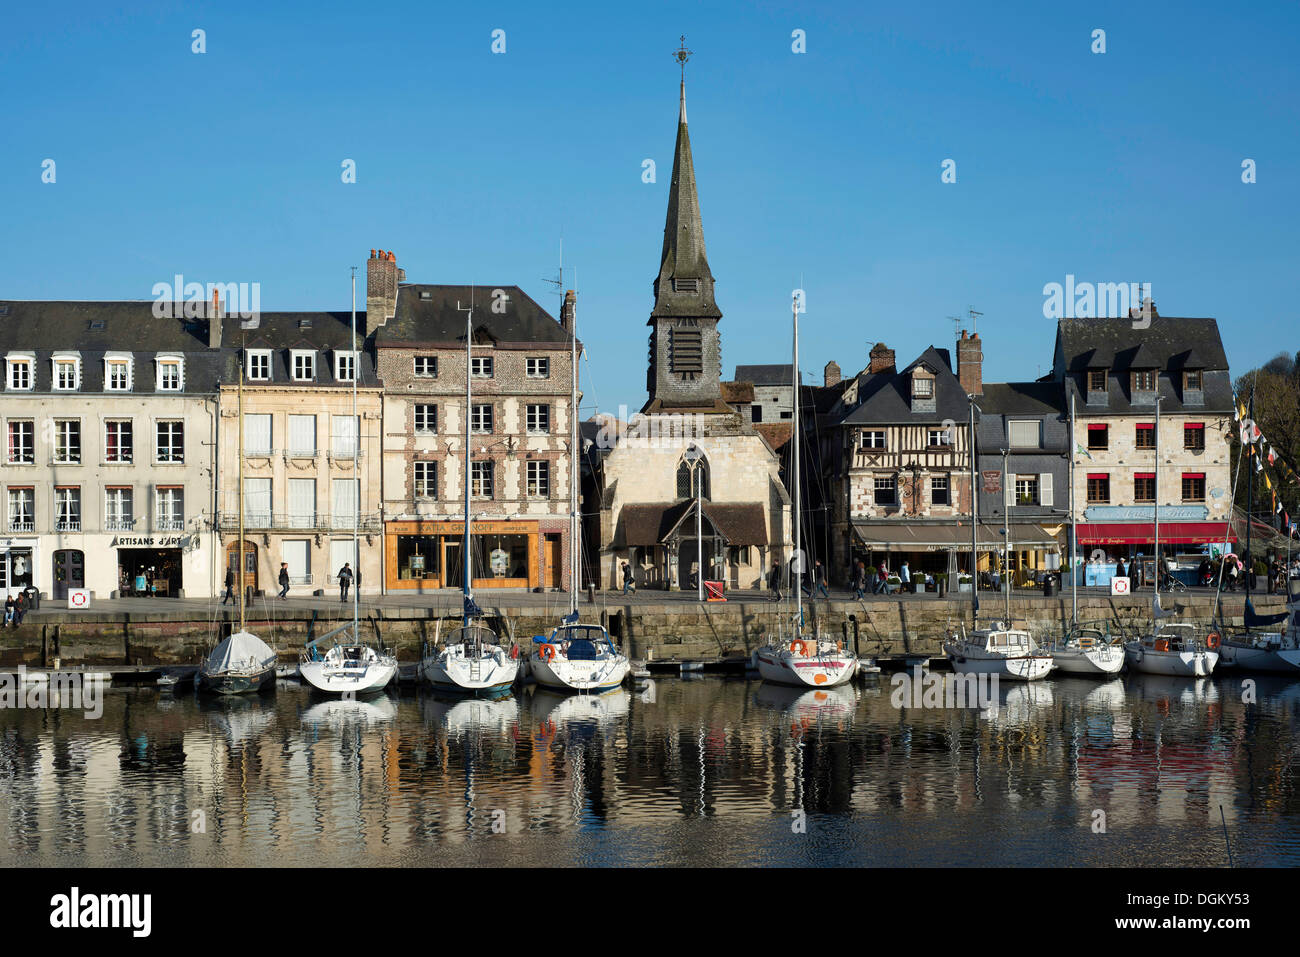 Port basin with a row of houses and the Naval Museum, Honfleur, Normandy, France, Europe - Stock Image